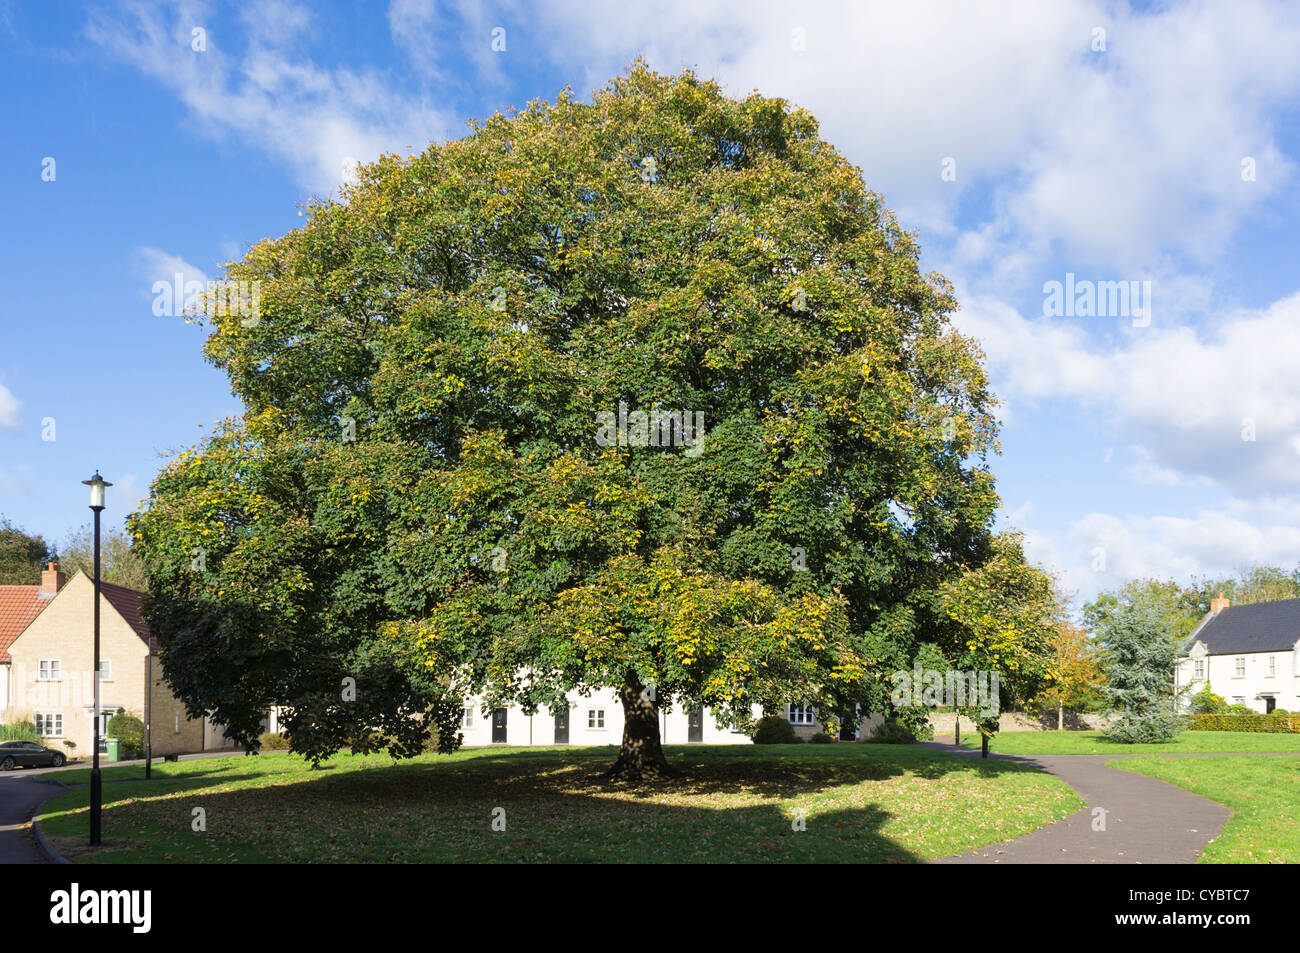 Large, mature Oak tree in late summer - Stock Image